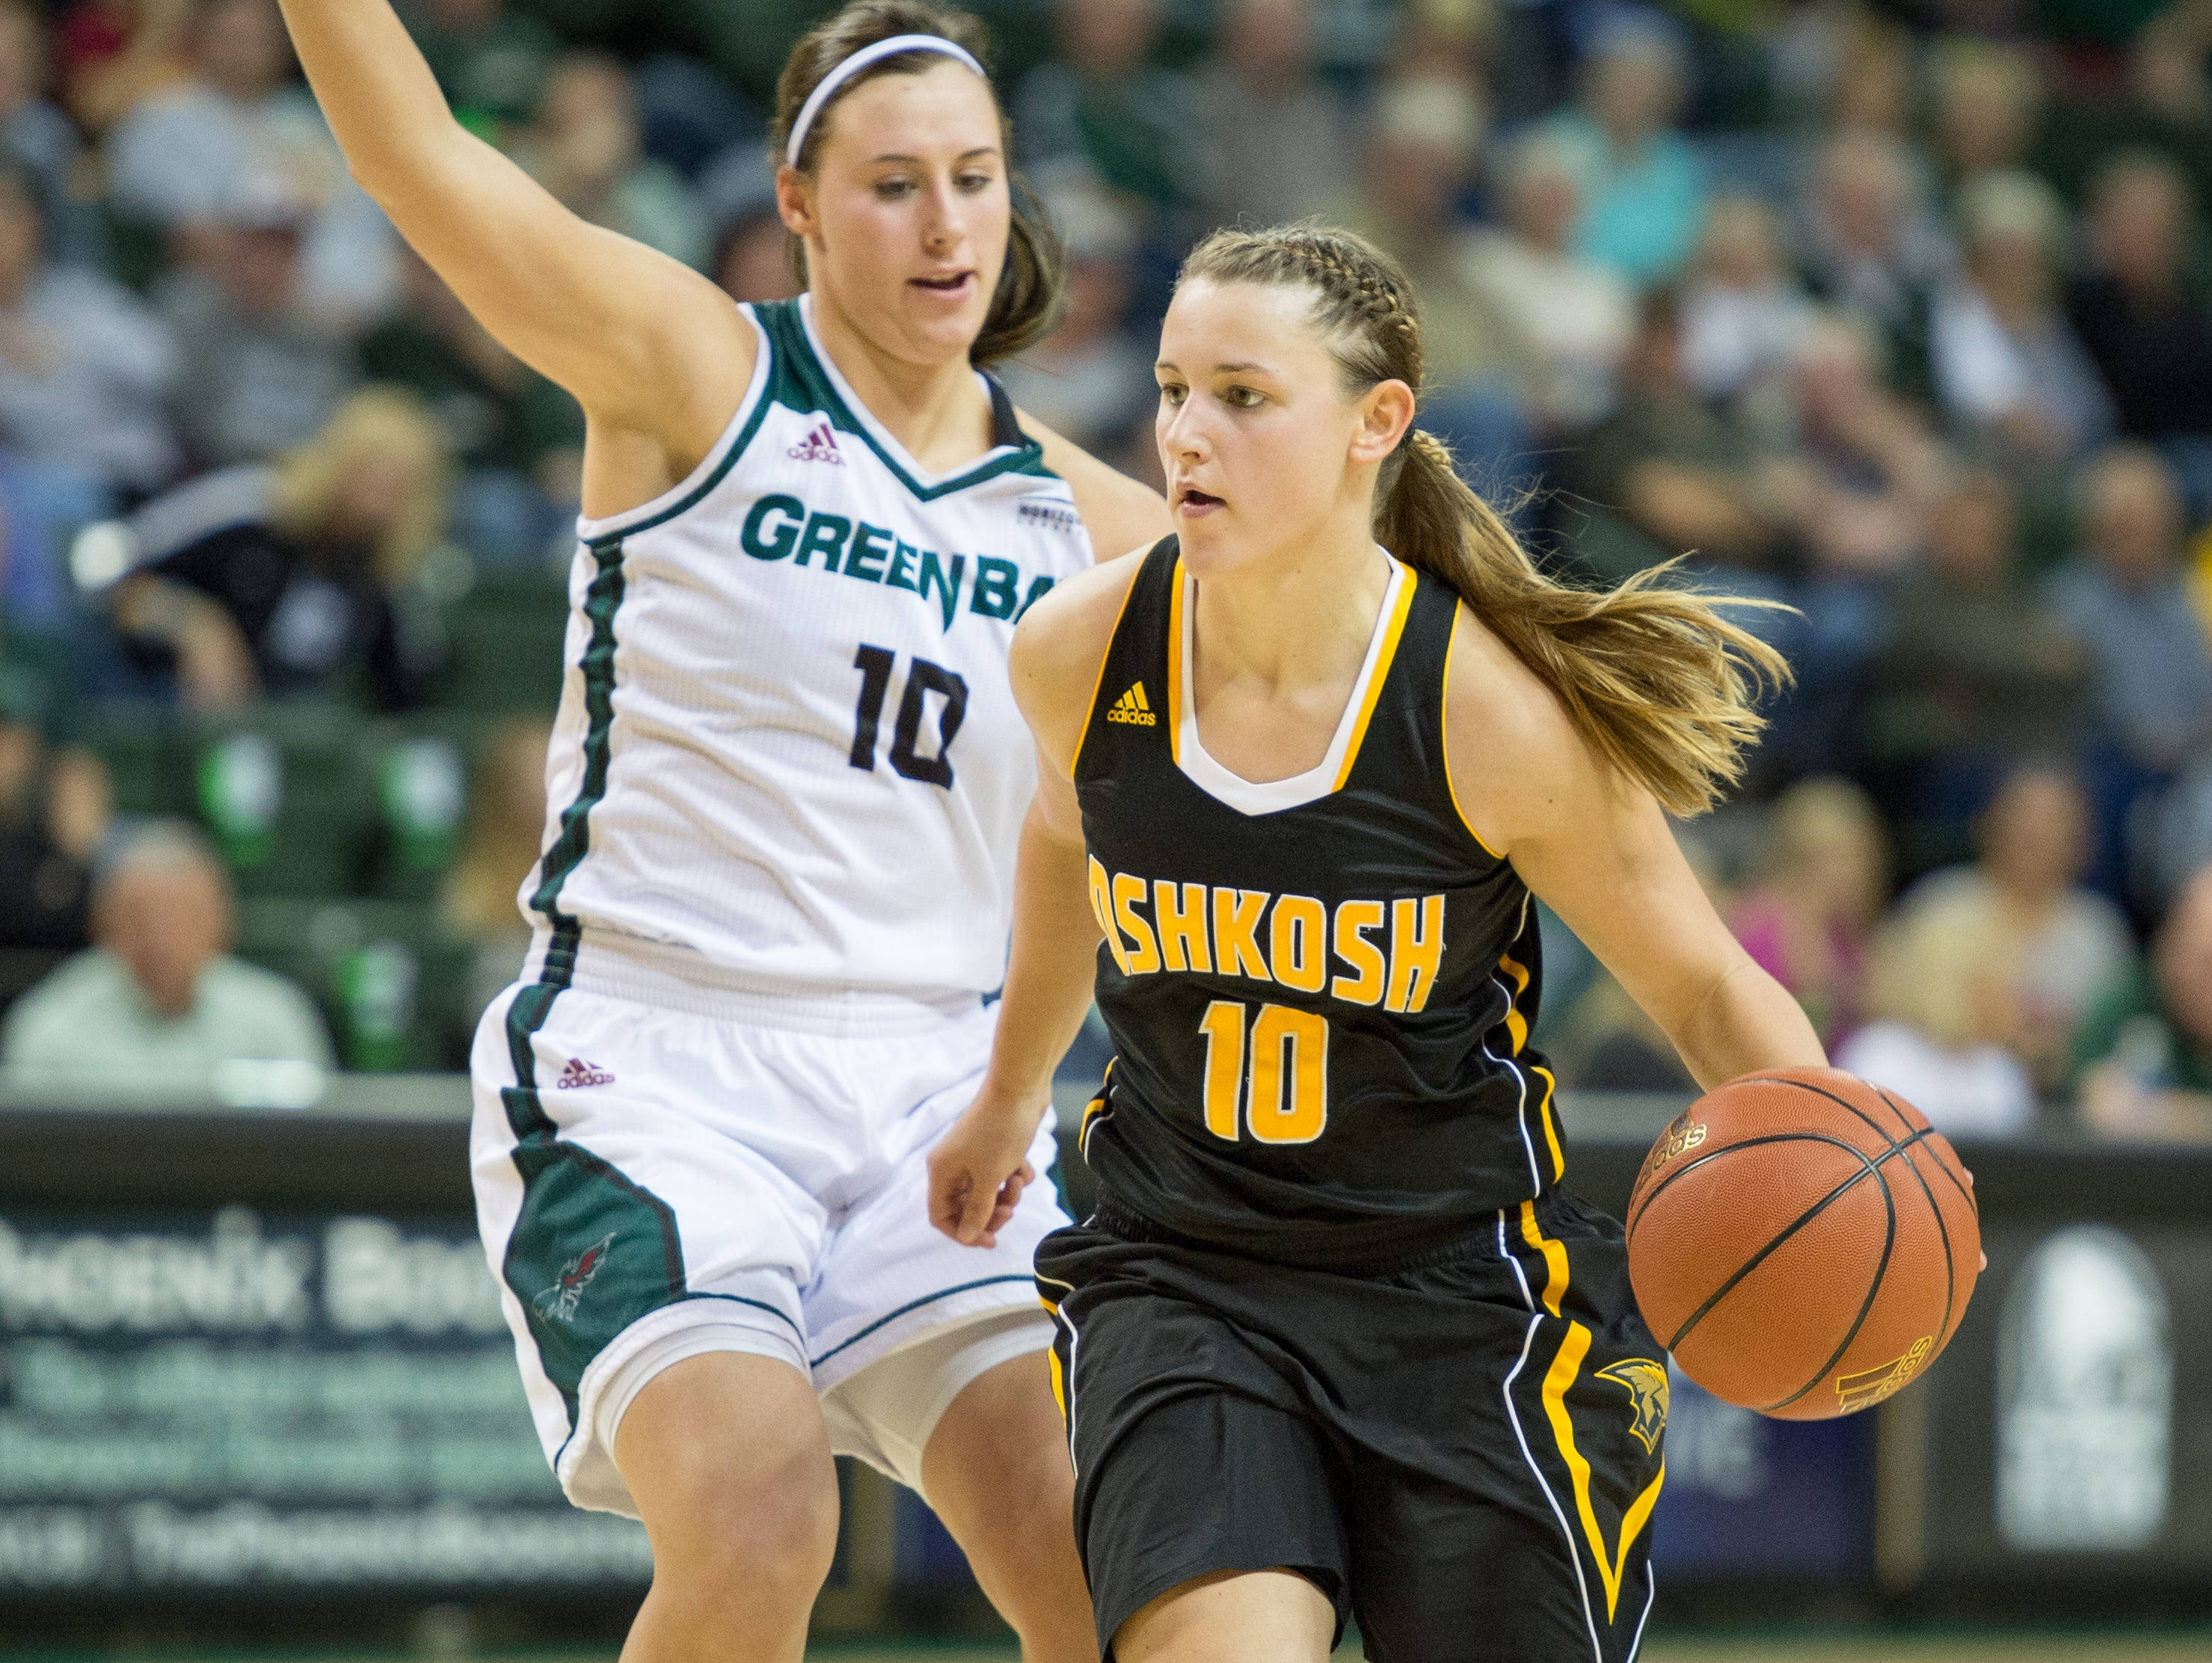 Algoma native Taylor Schmidt is averaging 11.1 points per game for the University of Wisconsin-Oshkosh women's basketball team and broke the program's record for career starts last week.